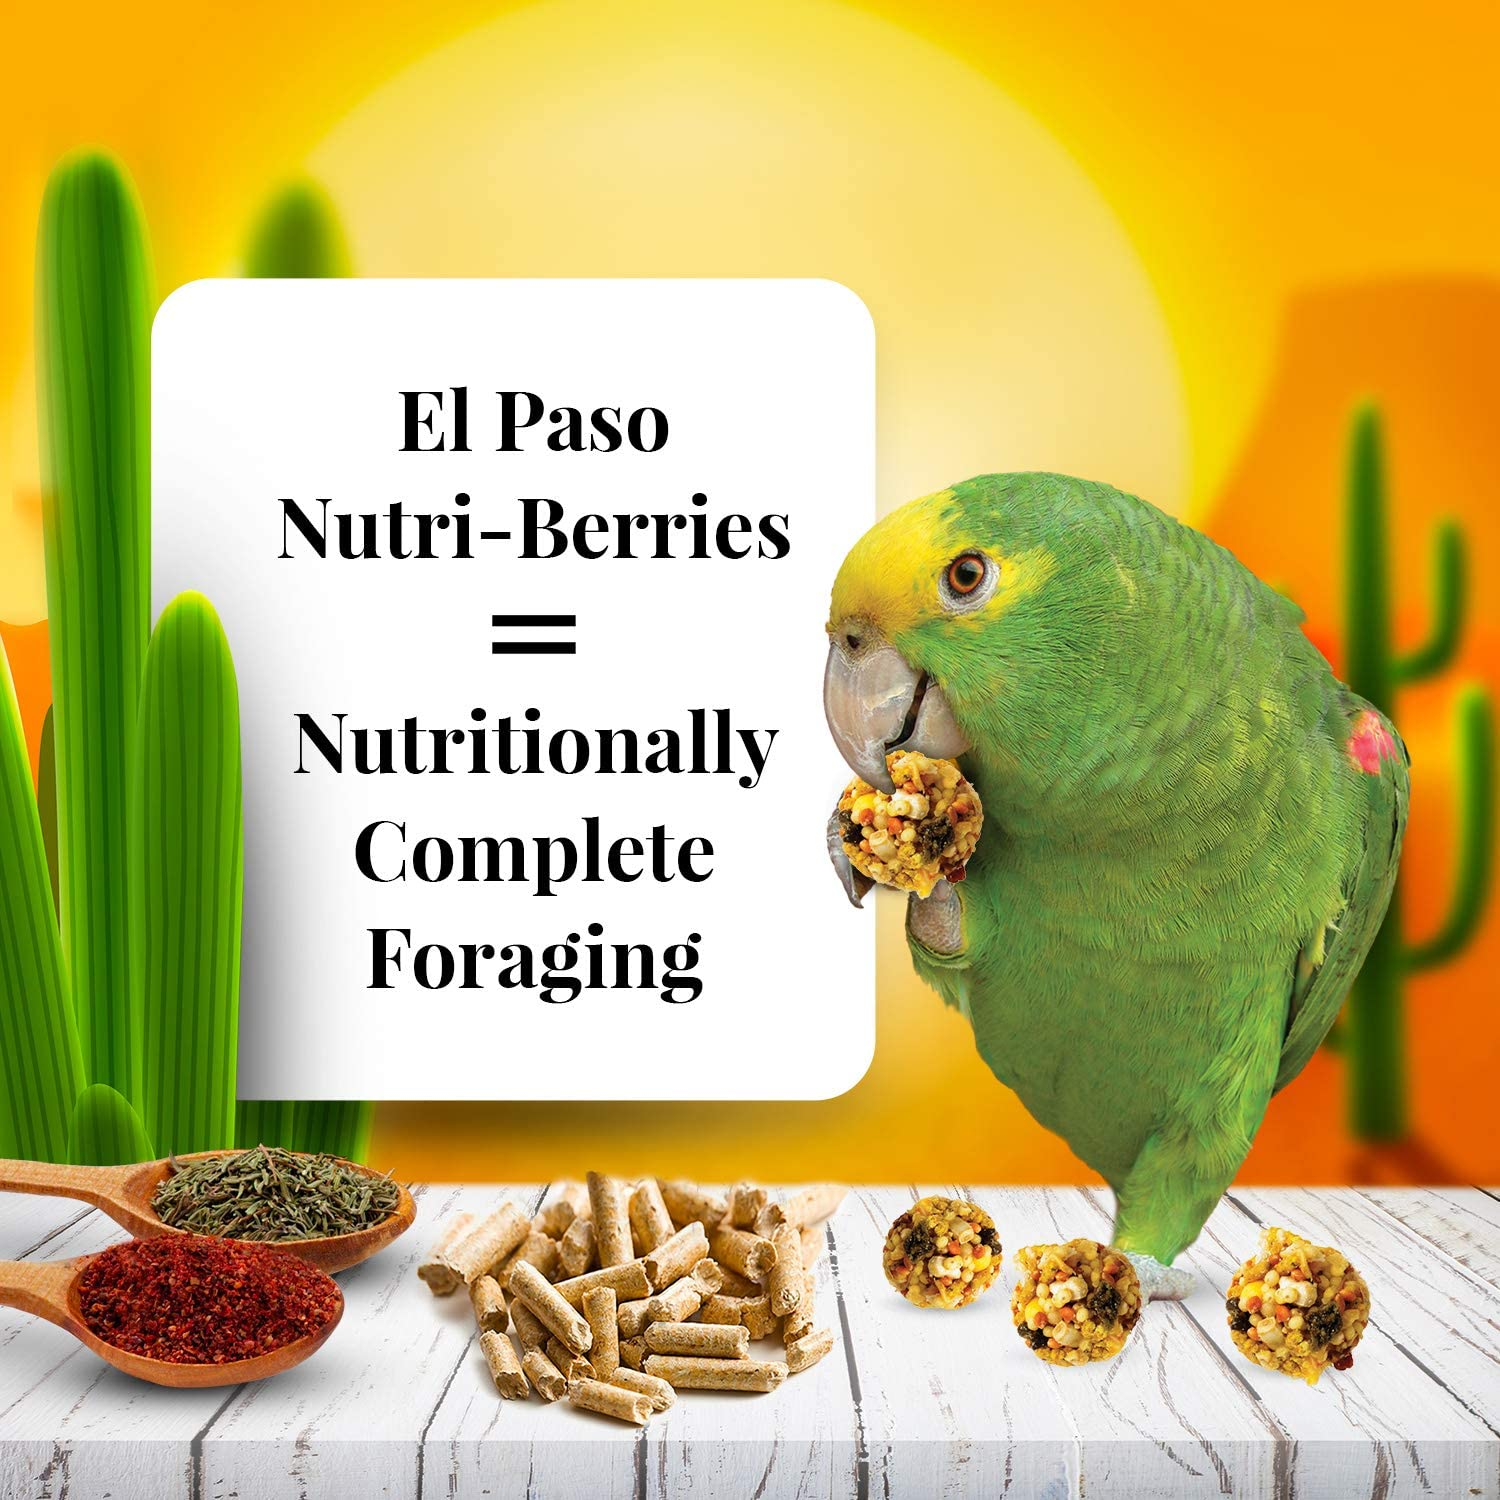 LAFEBER'S El Paso Nutri-Berries Pet Bird Food, Made with Non-GMO and Human-Grade Ingredients, for Parrots